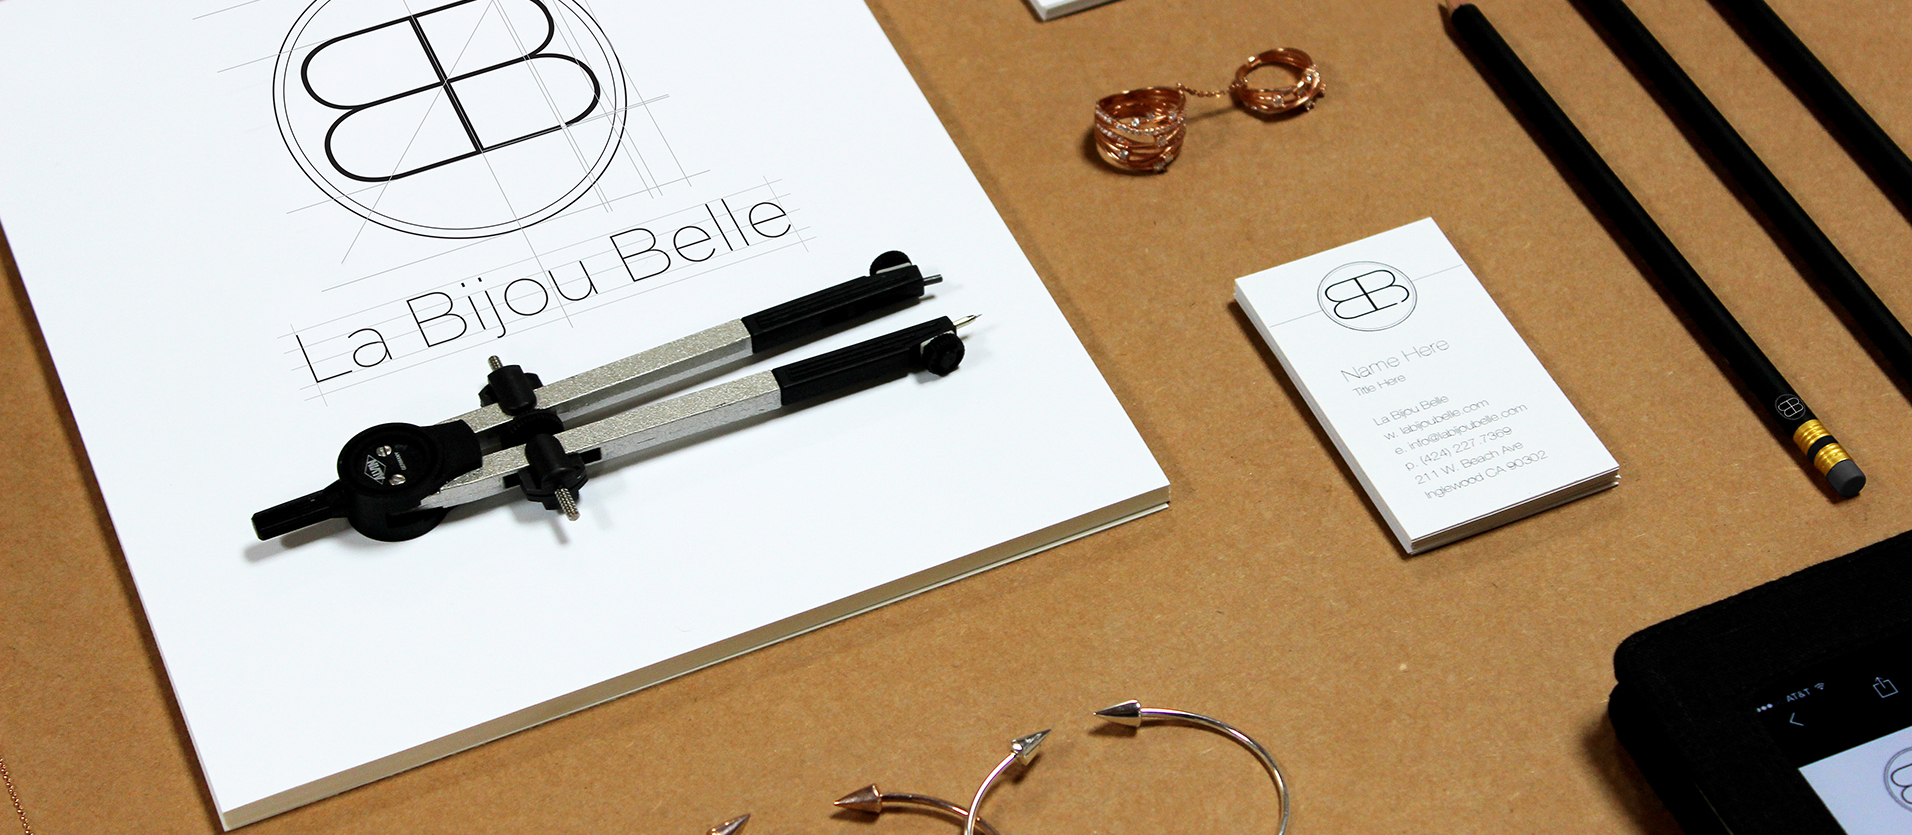 Project Slide Images About PageLa Bijou Belle.jpg